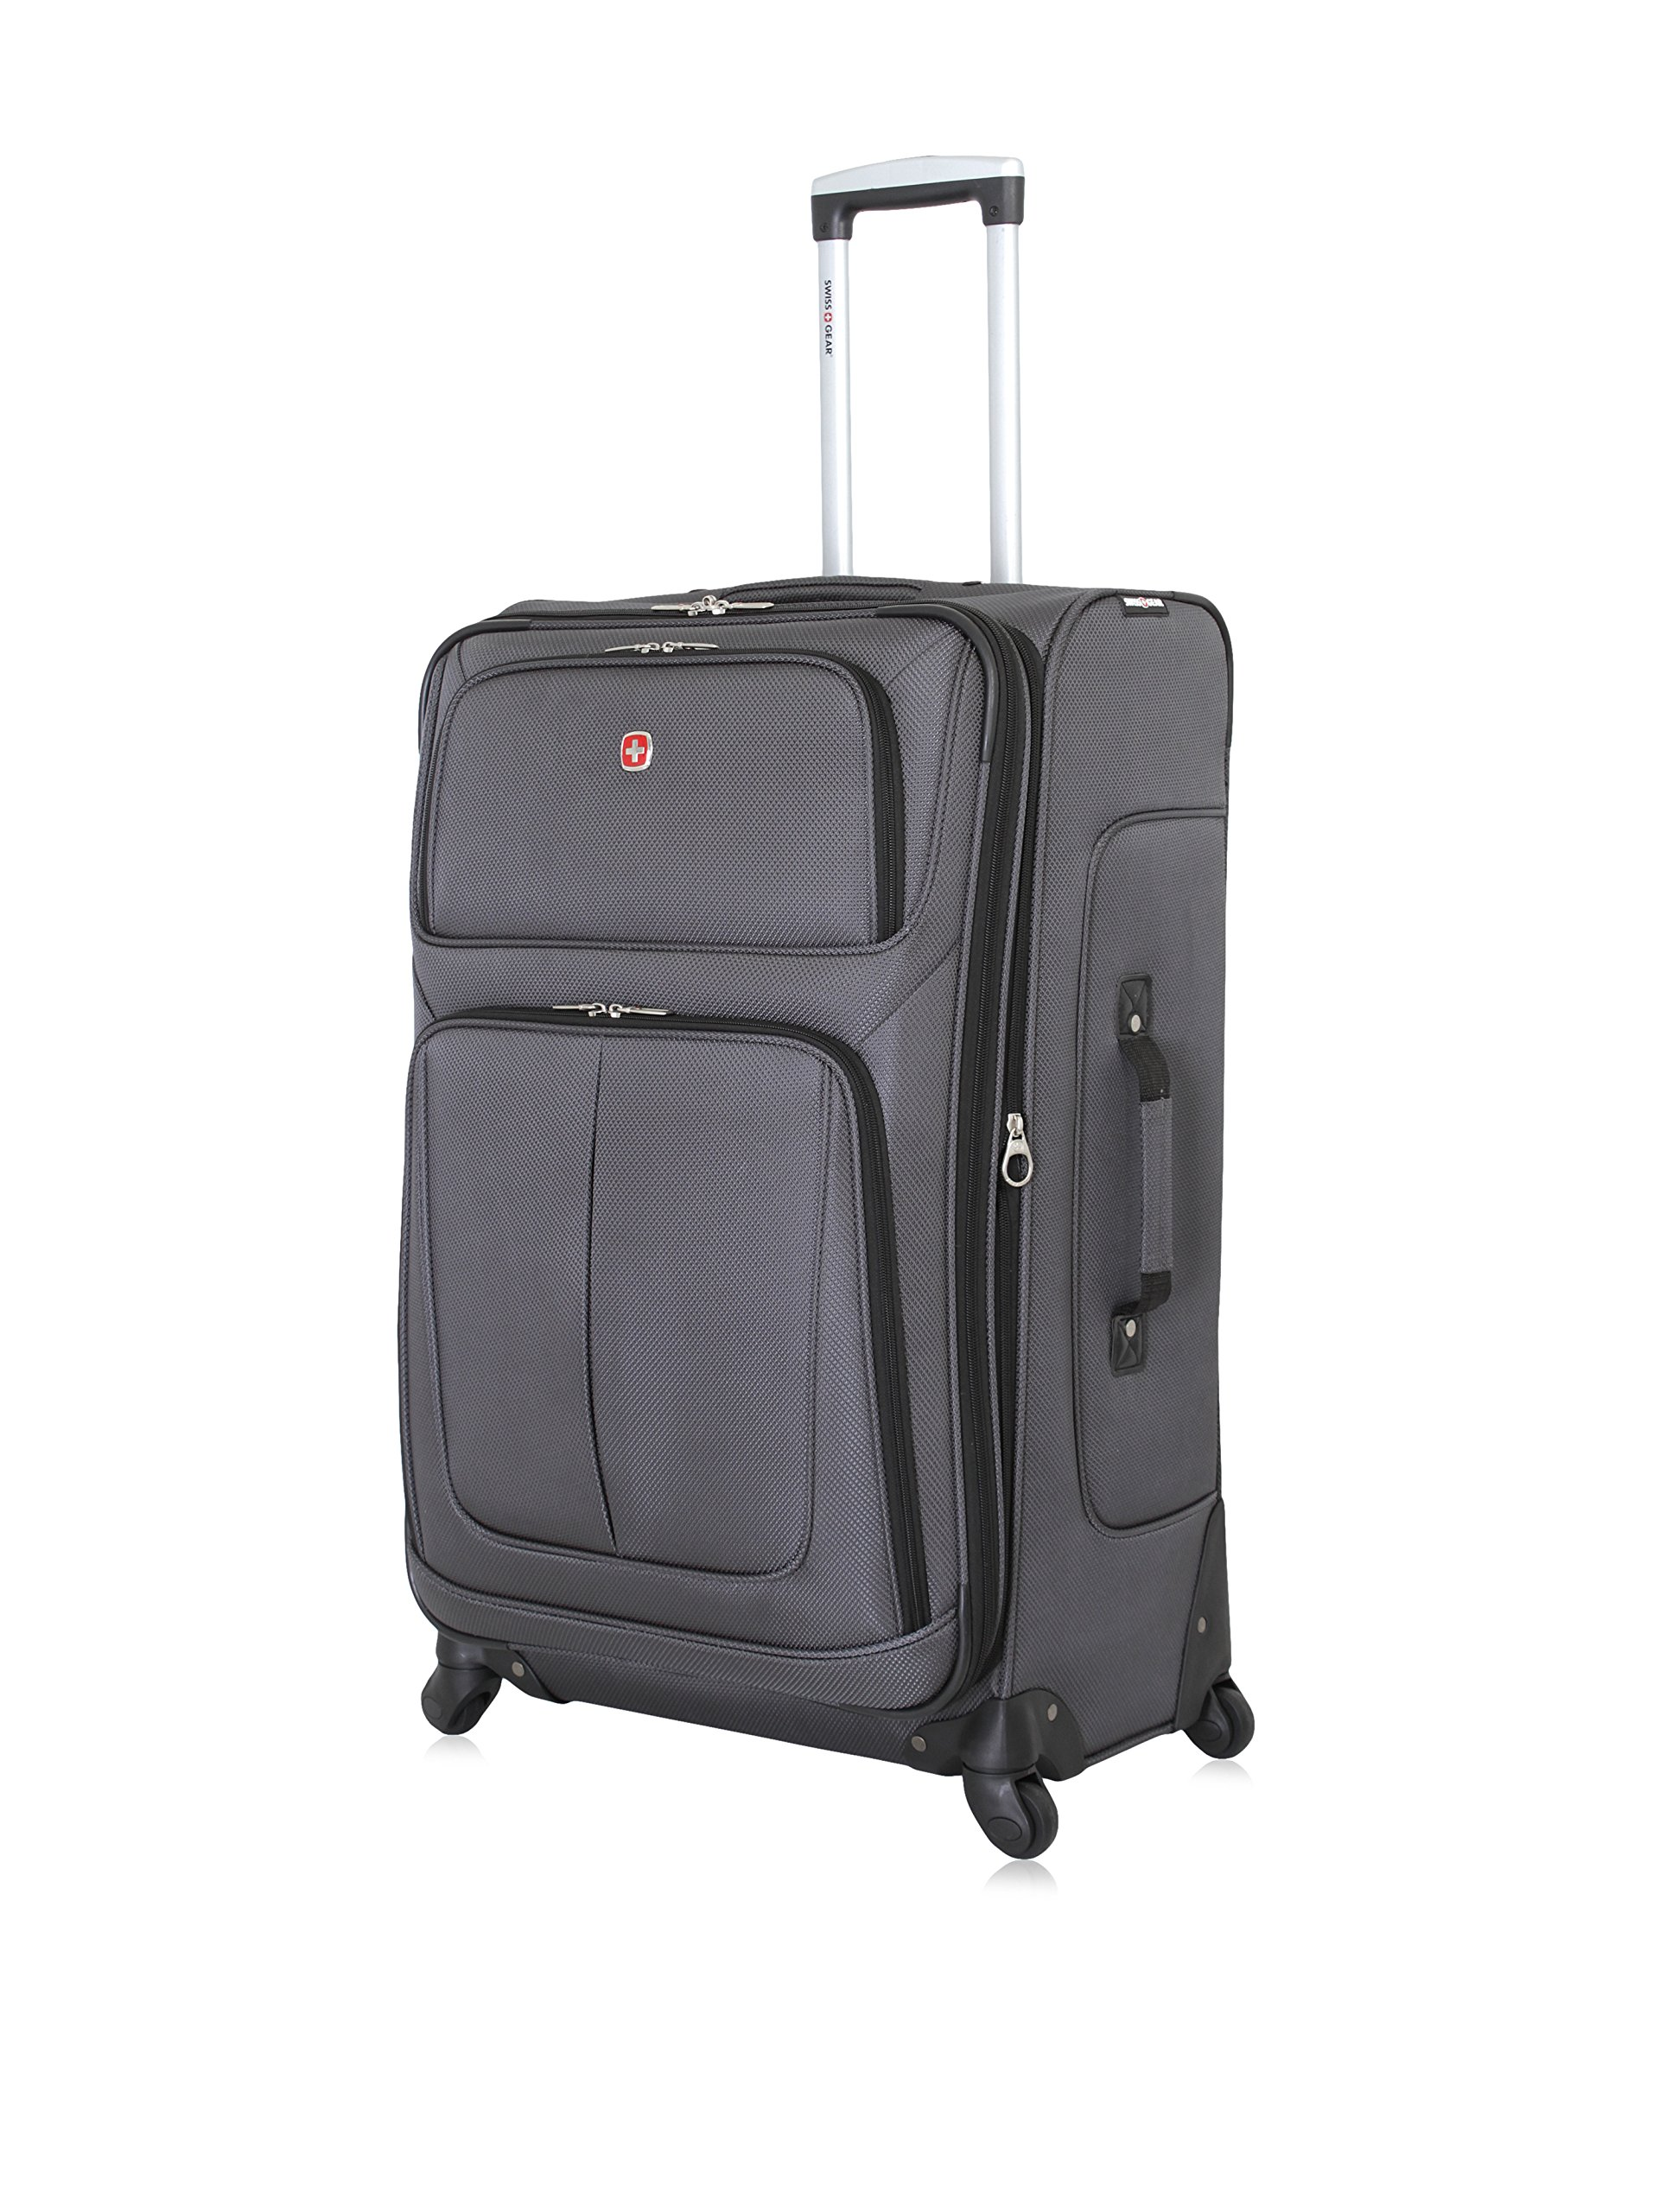 SwissGear Travel Spinner Luggage inches